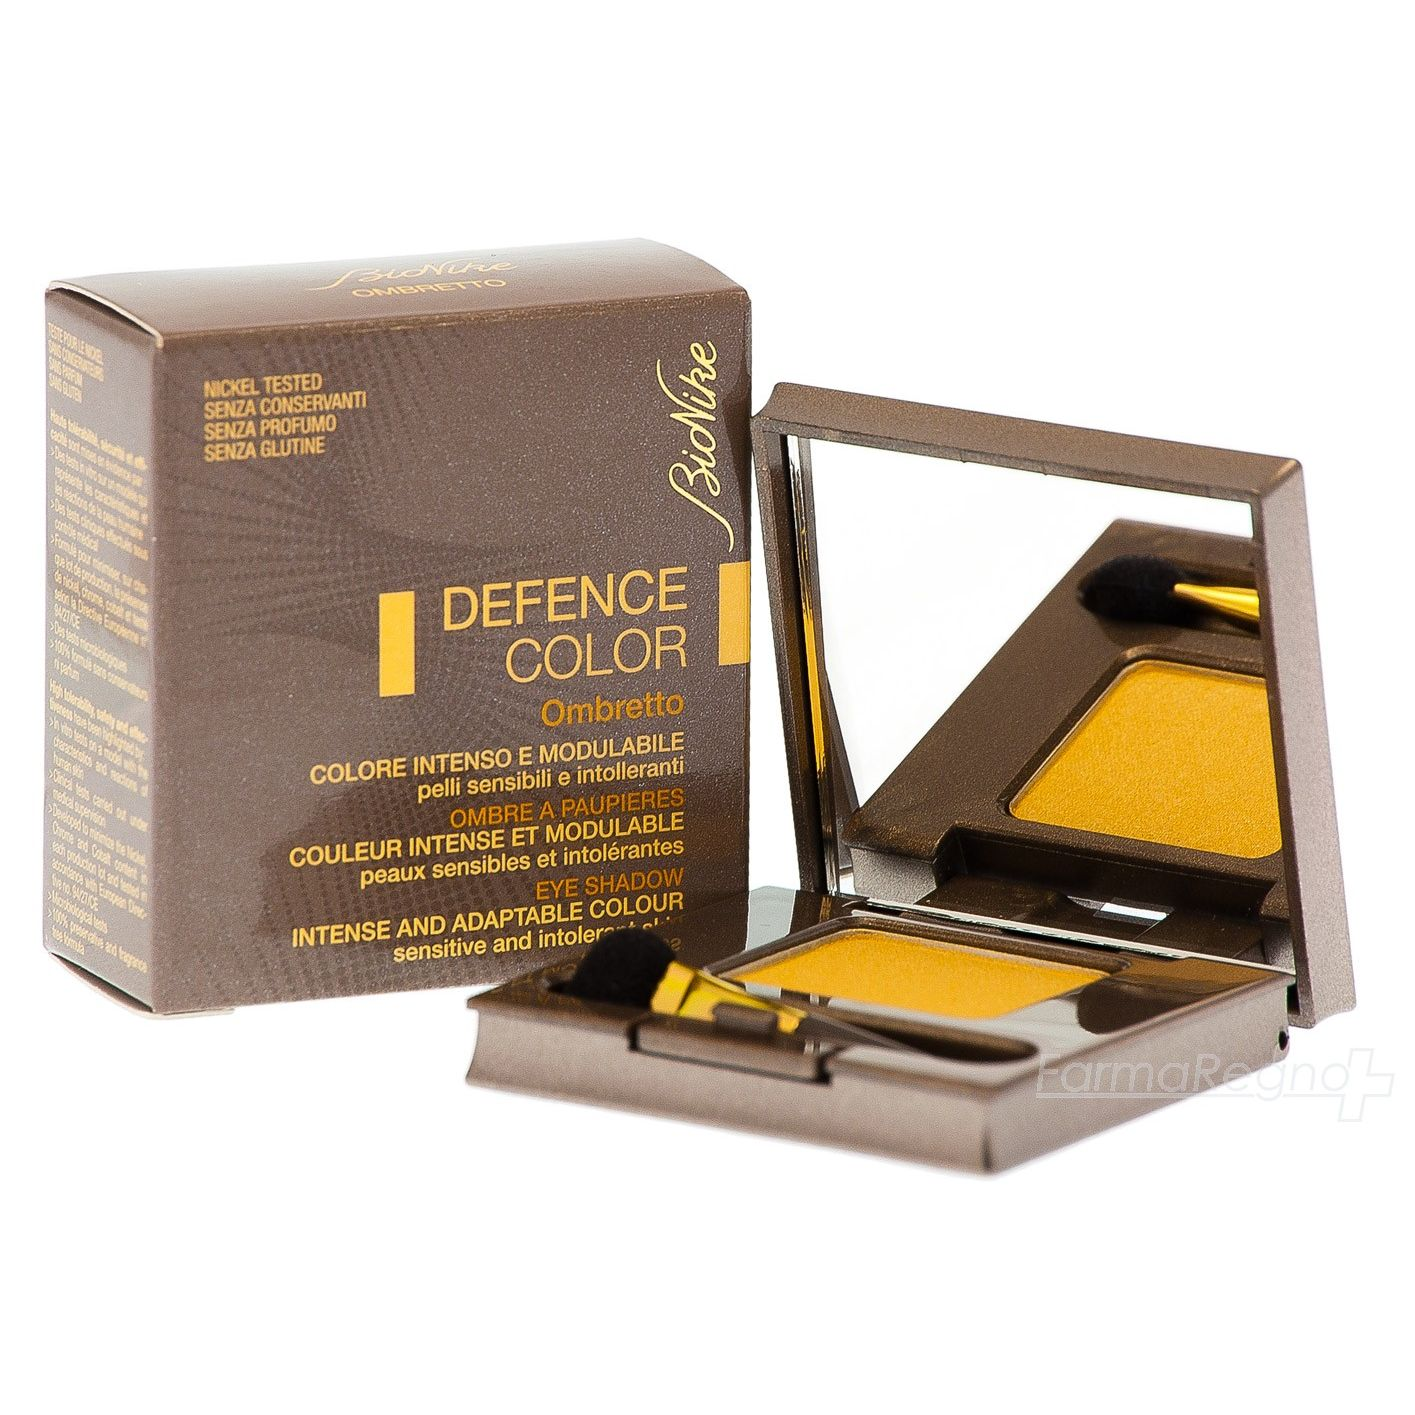 Ombretto Defence Color Light Gold 2g